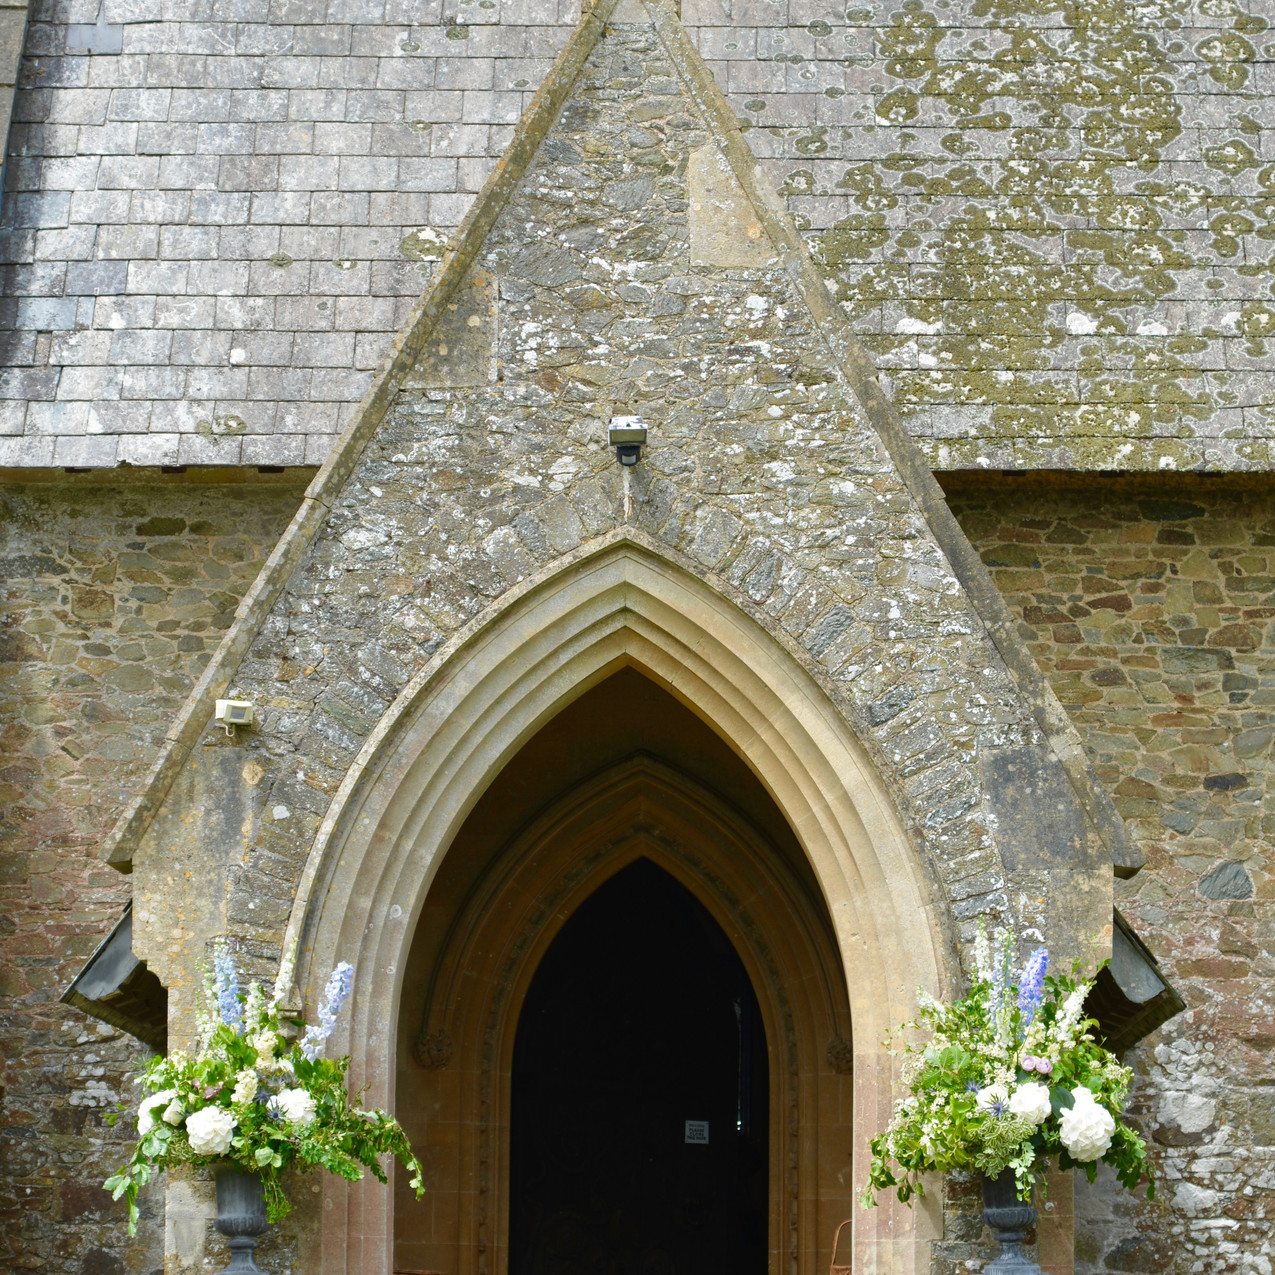 Entrance of St Matthew's church, landscove - decorated with two classical pedestal & urns, complete with natural, woodland style floral arrangements.